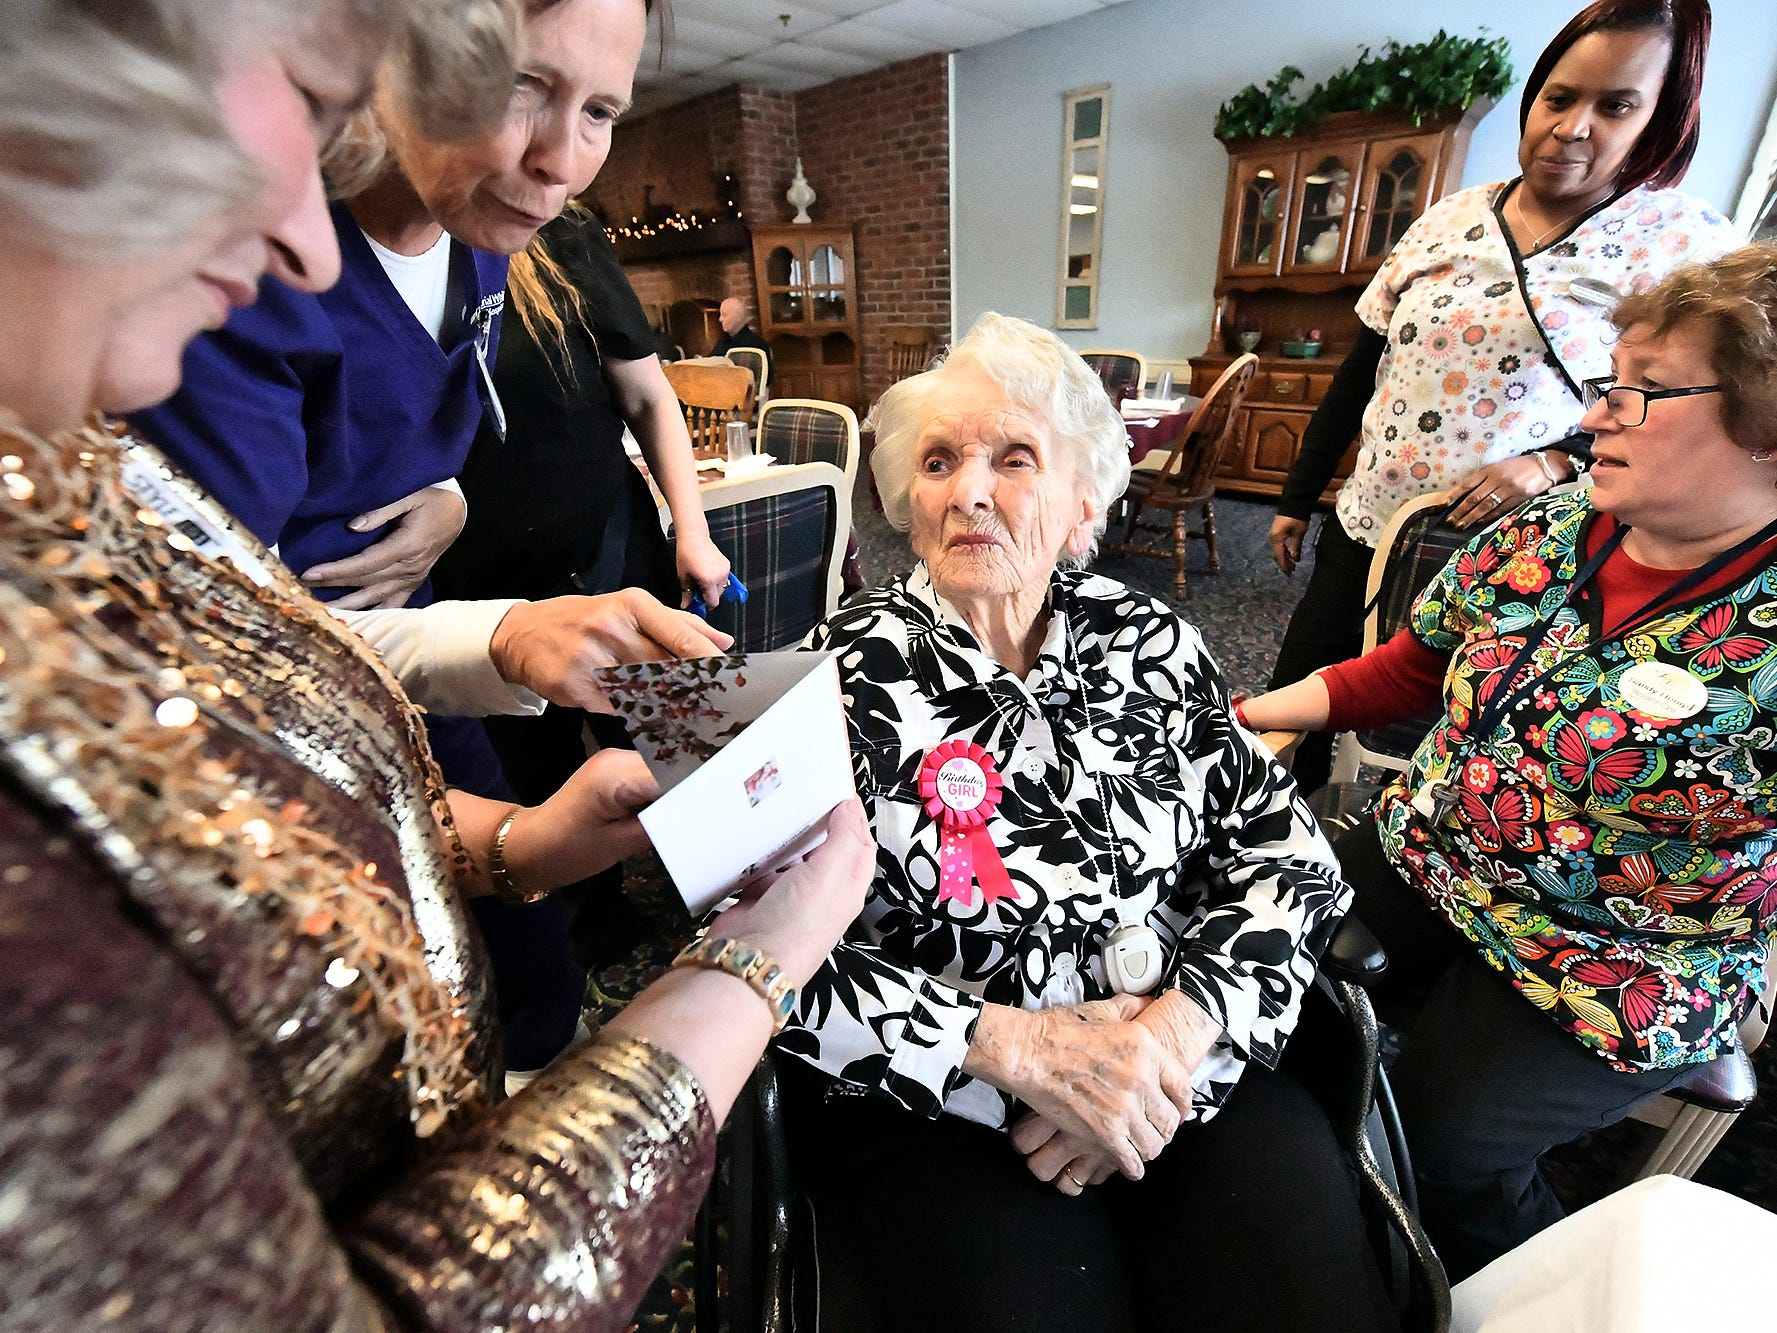 Ruth Kohler is surrounded by well-wishers while celebrating her 104th birthday at Senior Commons at Powder Mill where she is a resident Friday, Feb. 1, 2019. According to Commons staff, she is the oldest resident to have lived there. Bill Kalina photo